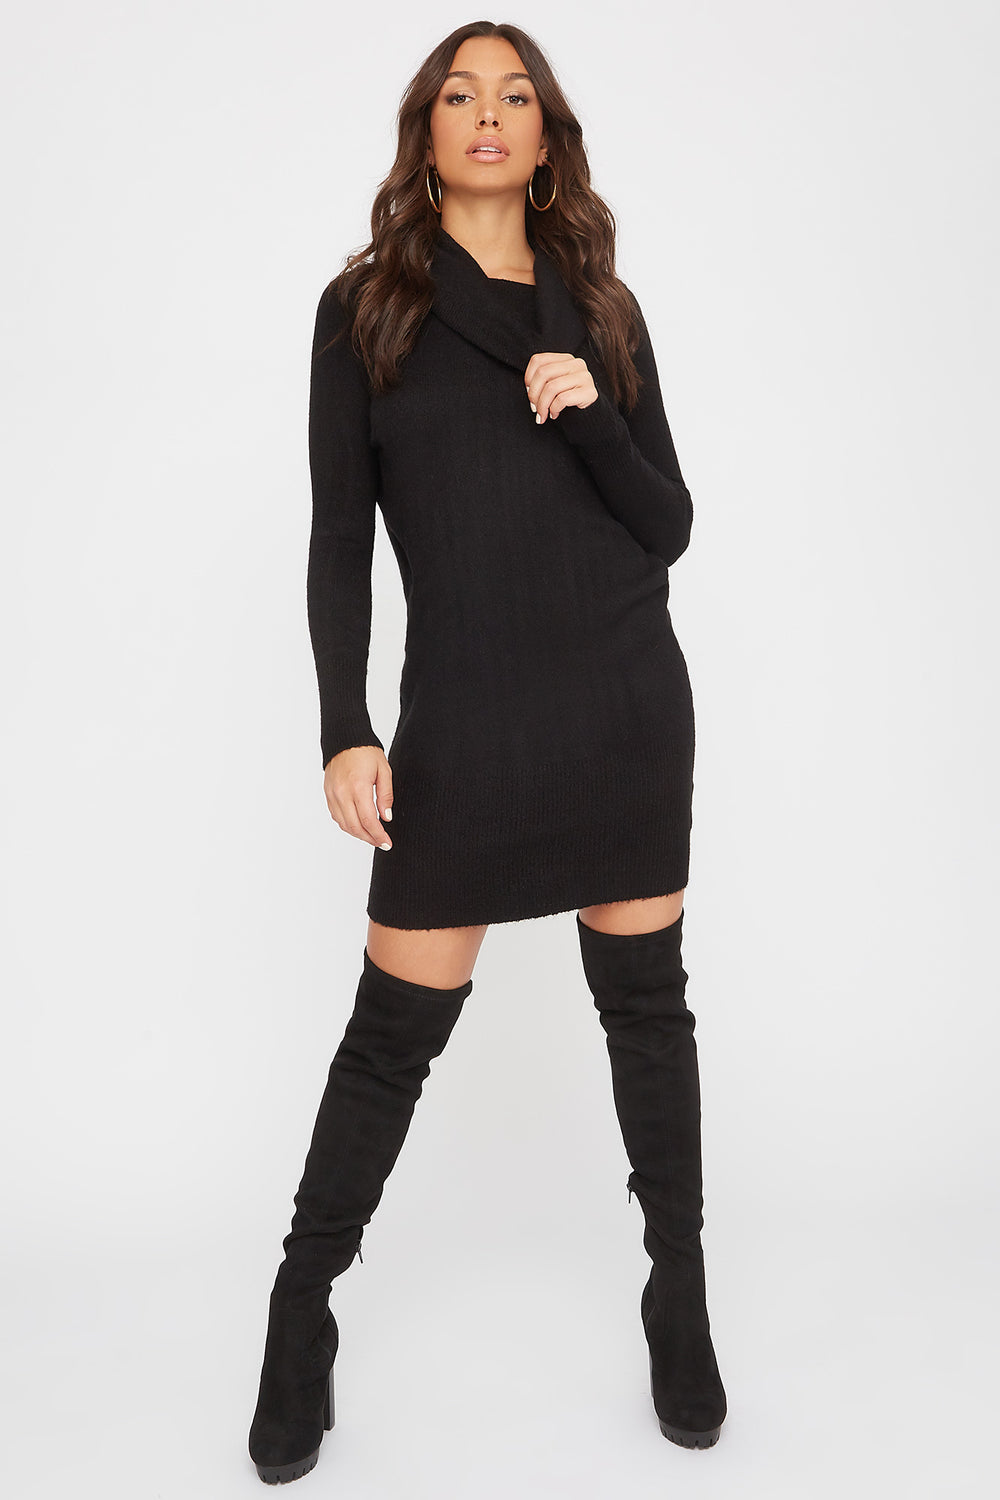 2-Way Mossy Cowl Neck Sweater Dress Black